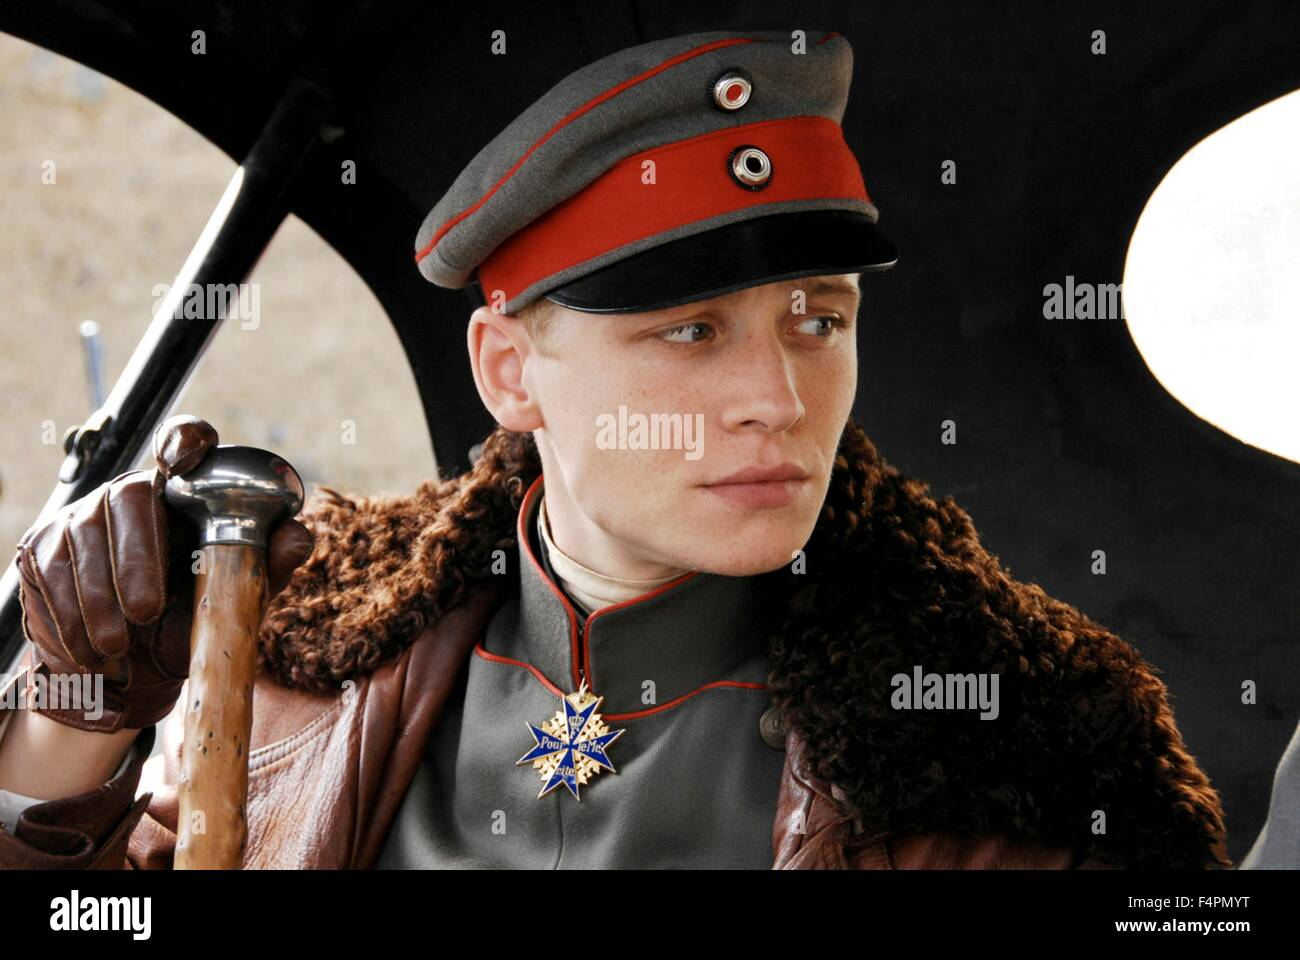 Matthias Schweighöfer / The Red Baron / 2008 directed by Nikolai Müllerschön  [Niama Film] - Stock Image